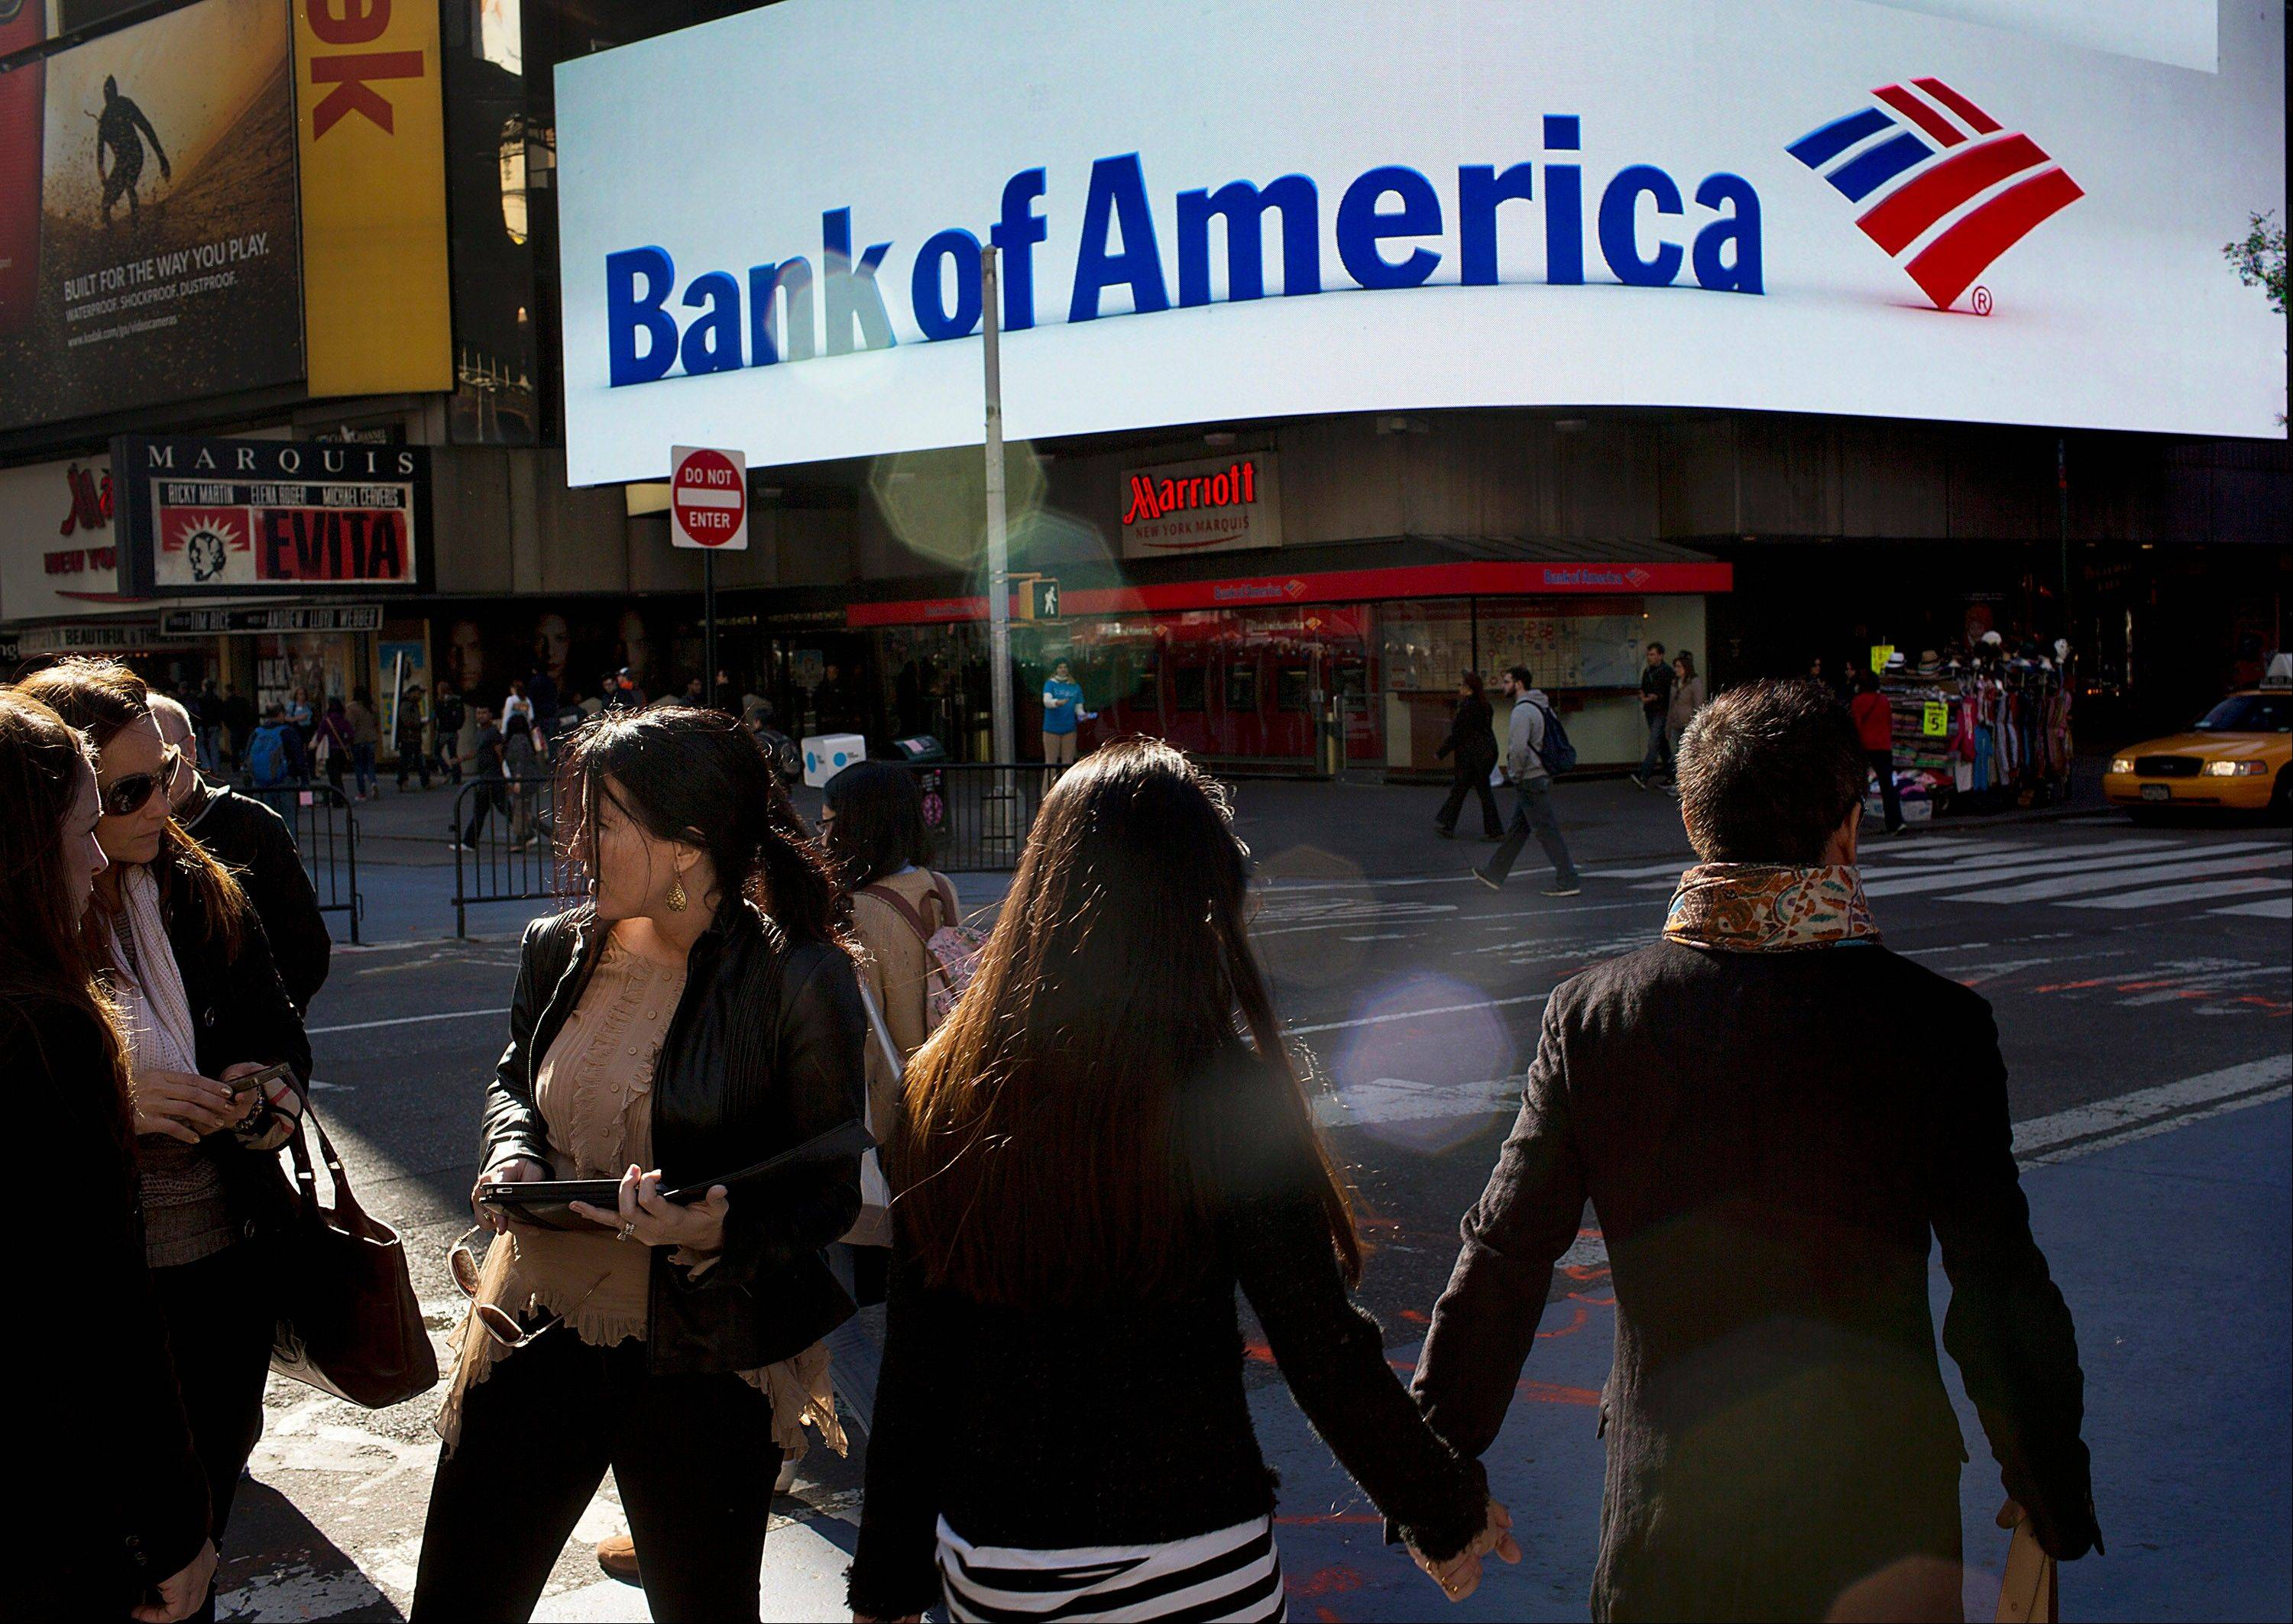 Pedestrians walk past a Bank of America Corp. branch in New York, U.S., on Tuesday, Oct. 16, 2012. Bank of America Corp. is scheduled to release earnings data on Oct. 17. Photographer: Victor J. Blue/Bloomberg